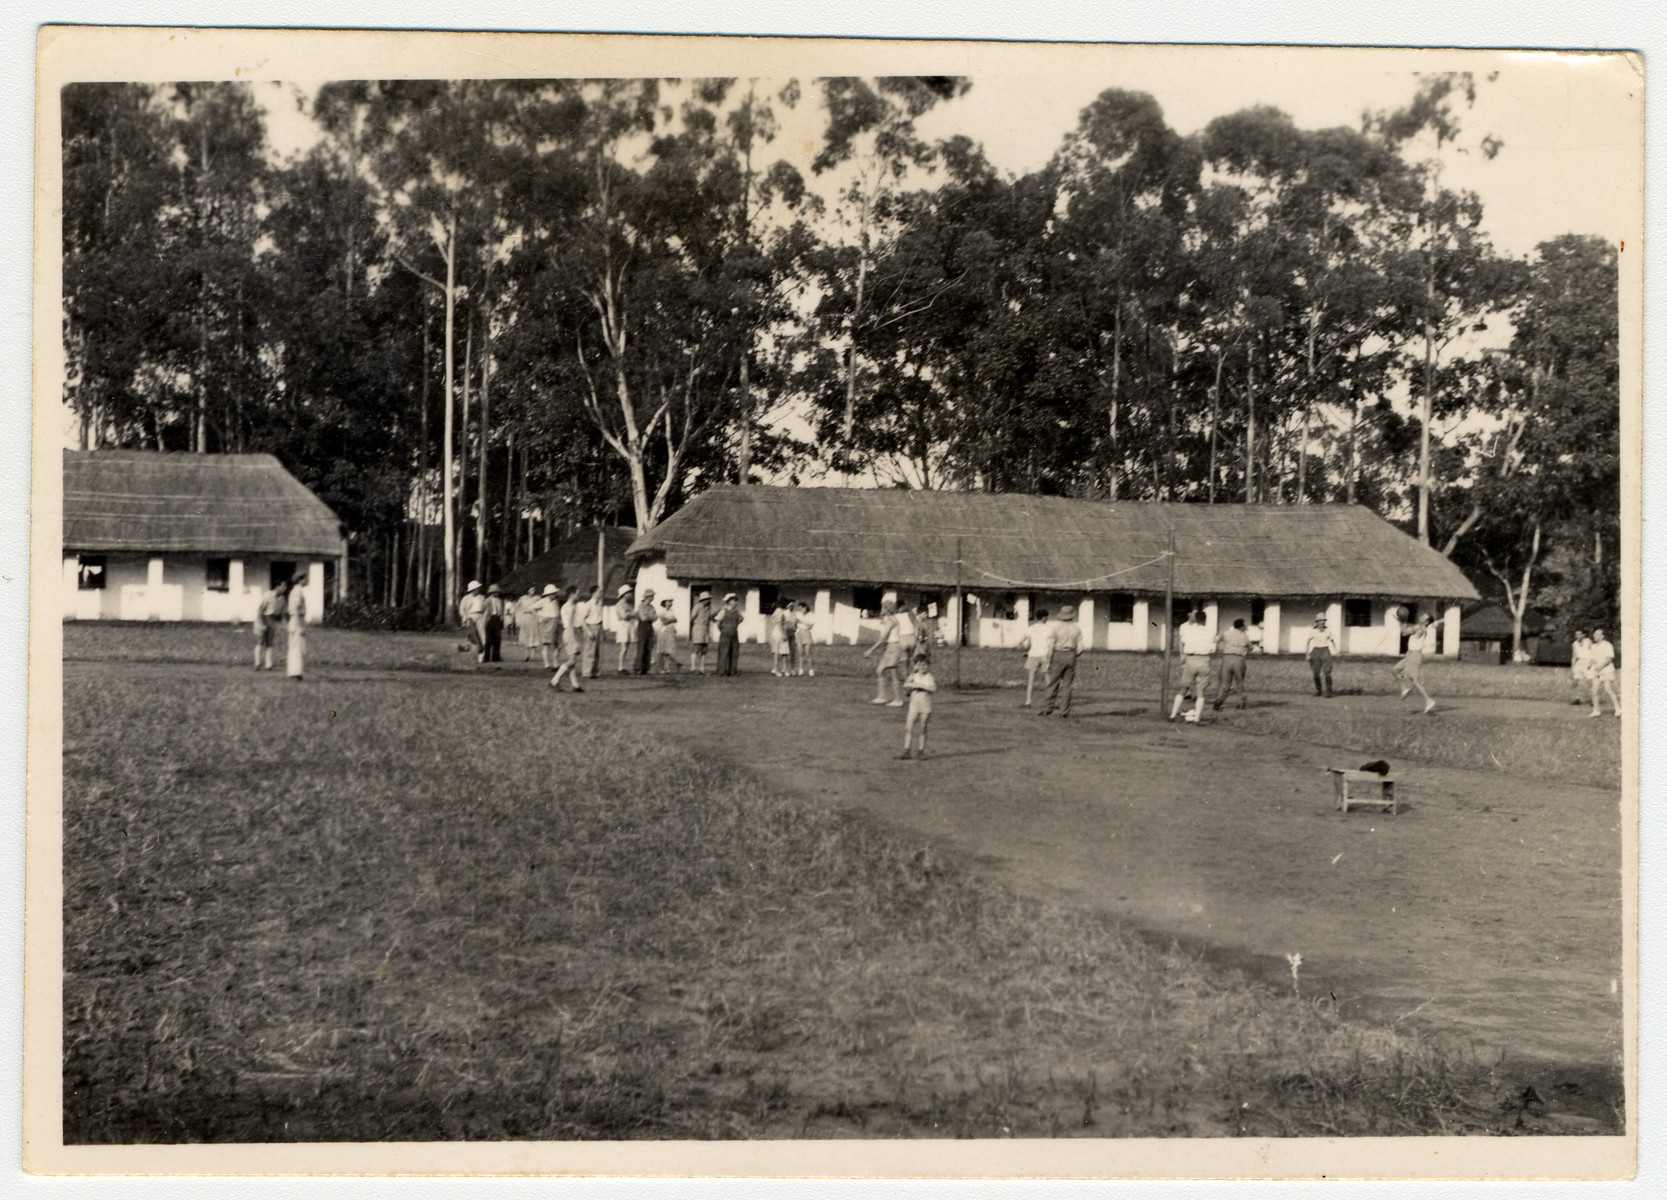 Internees play a sport on a grassy field in the internment camp for enemy aliens in Nyasaland.